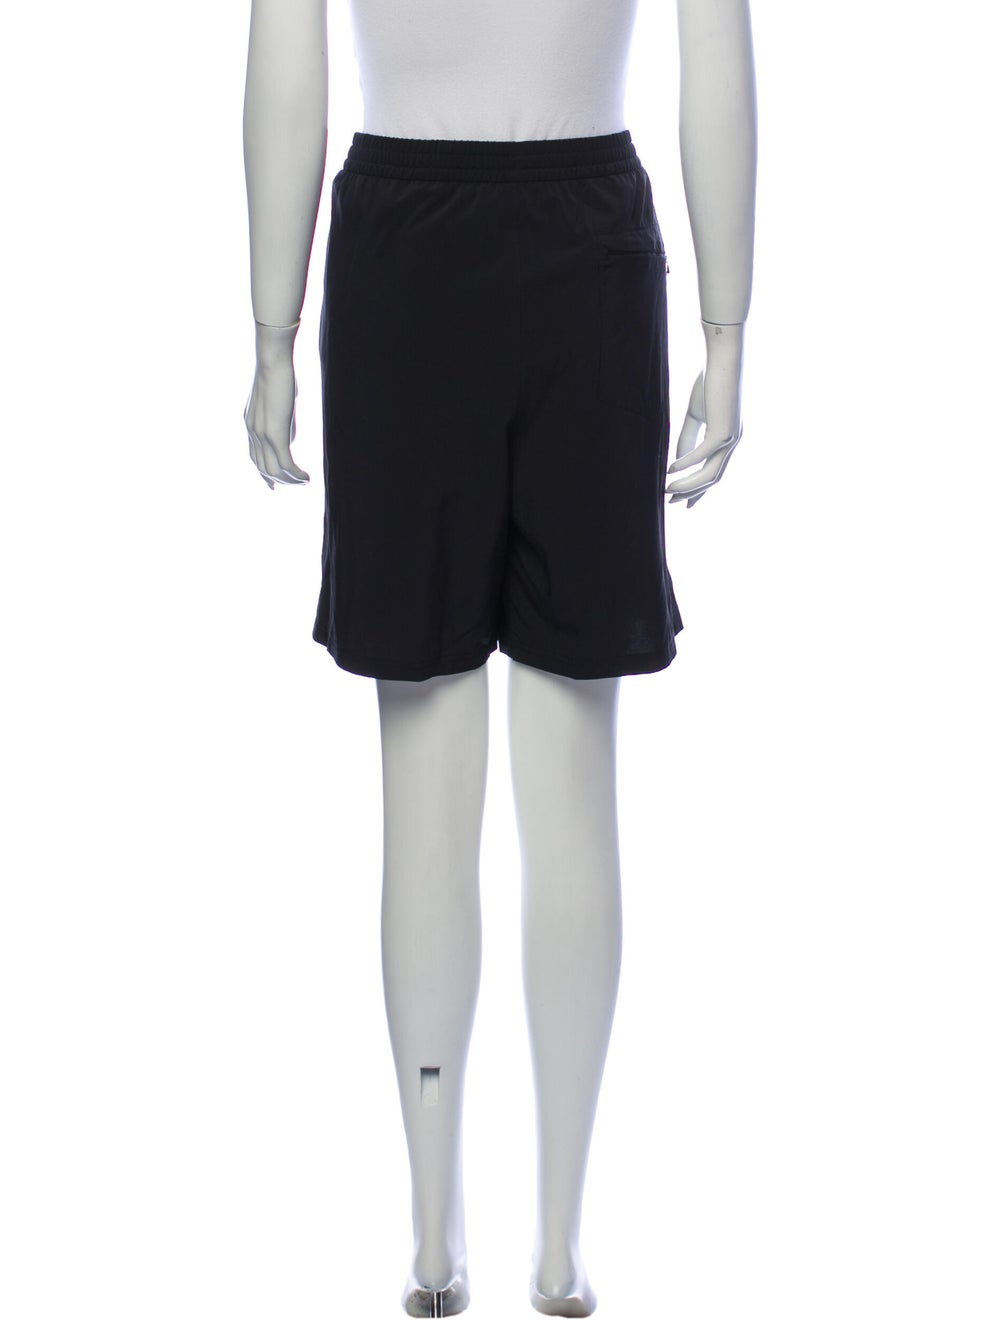 Outdoor Voices Knee-Length Shorts Black - image 3